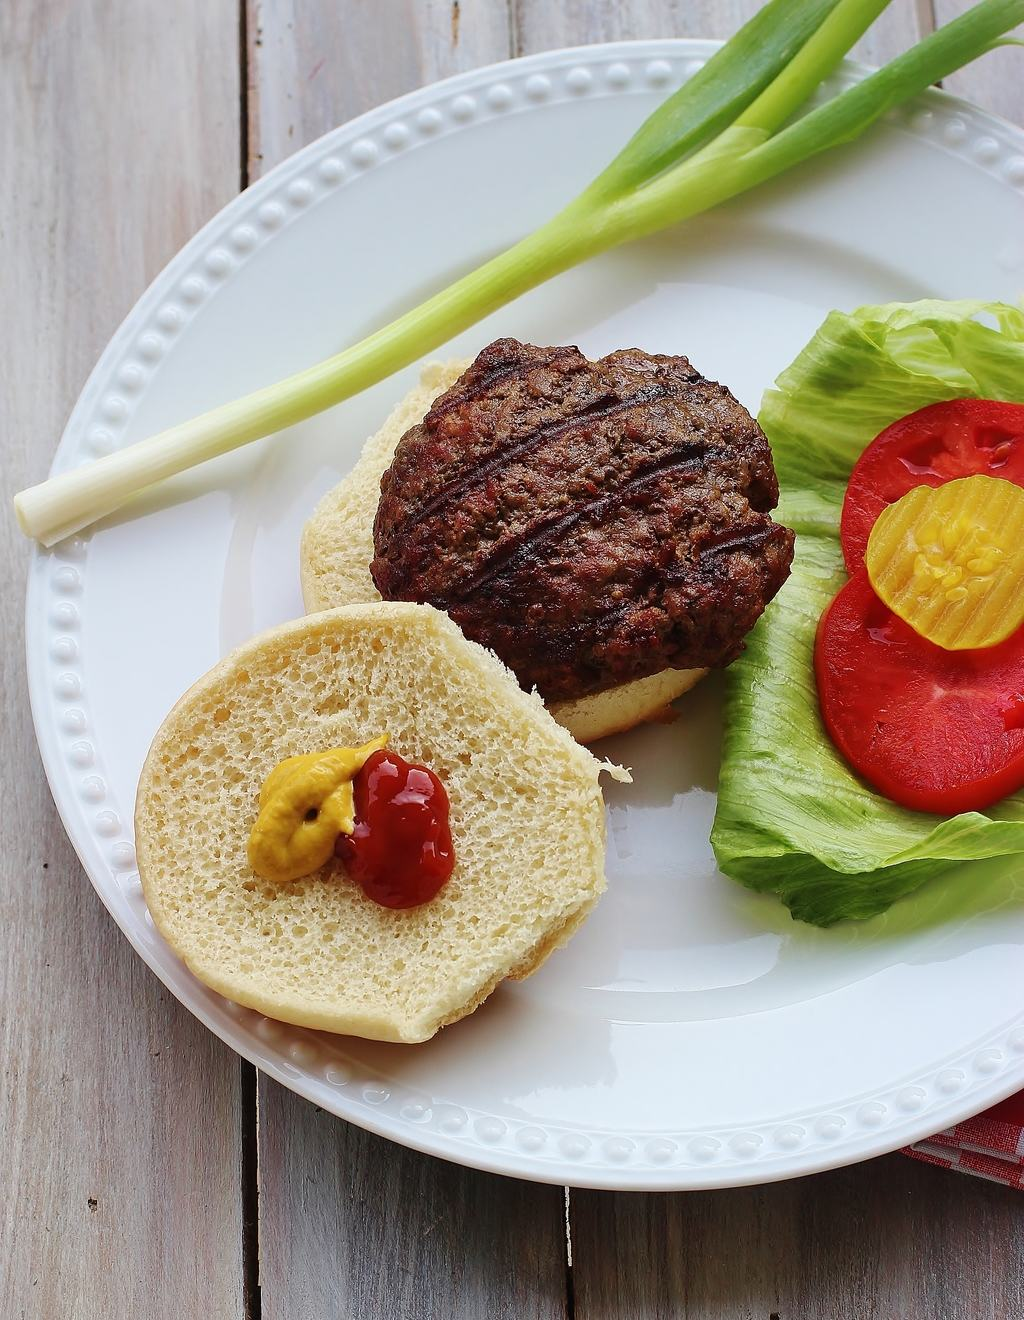 All-American Grilled Hamburgers